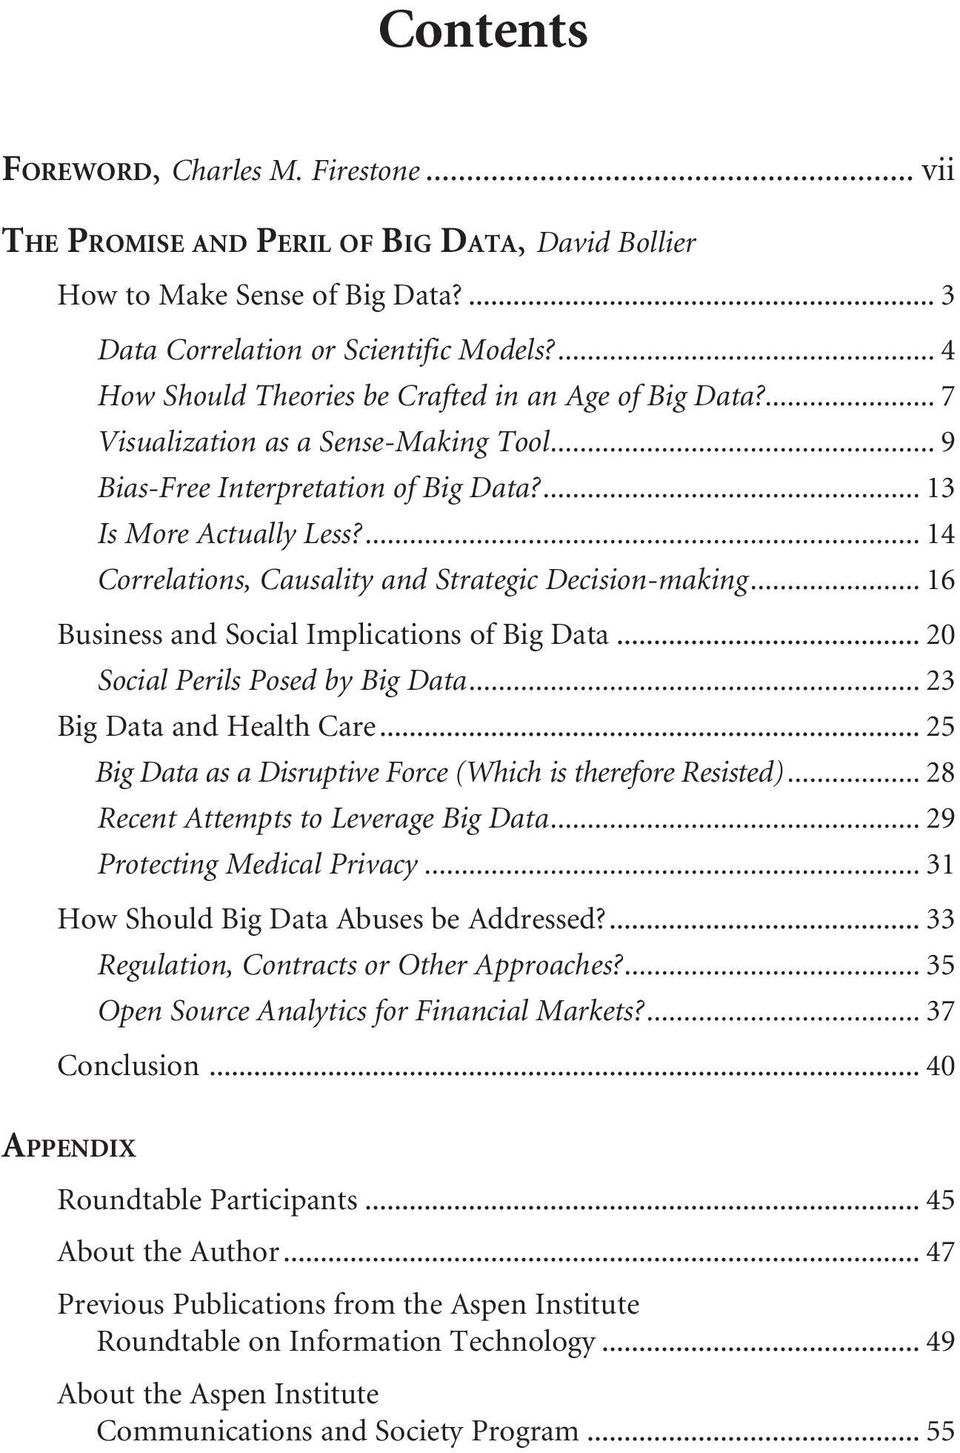 ... 14 Correlations, Causality and Strategic Decision-making... 16 Business and Social Implications of Big Data... 20 Social Perils Posed by Big Data... 23 Big Data and Health Care.